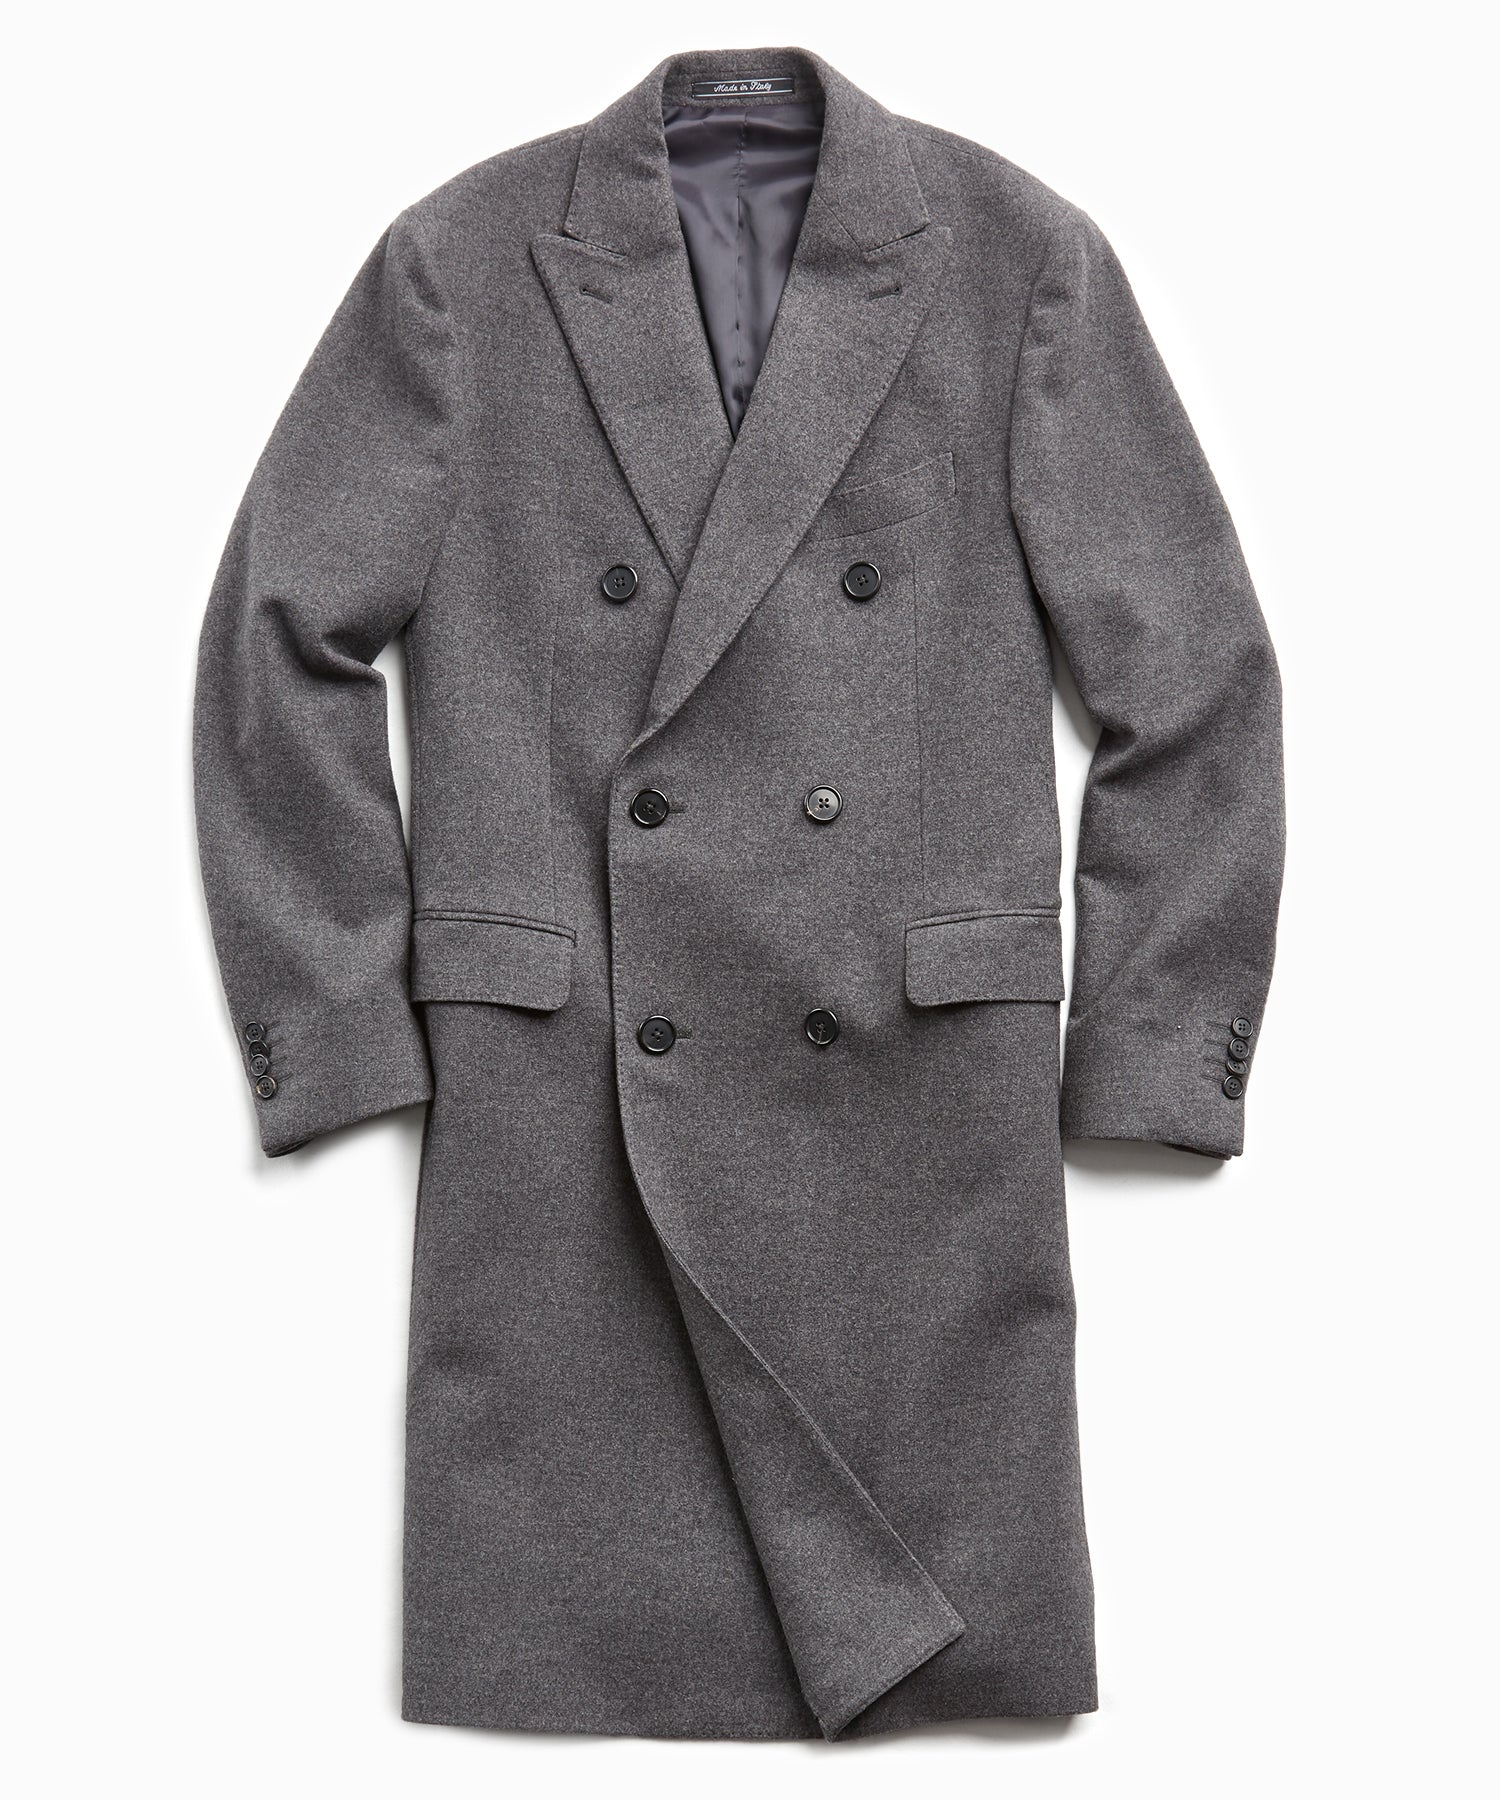 Italian Cashmere Double Breasted Topcoat in Charcoal